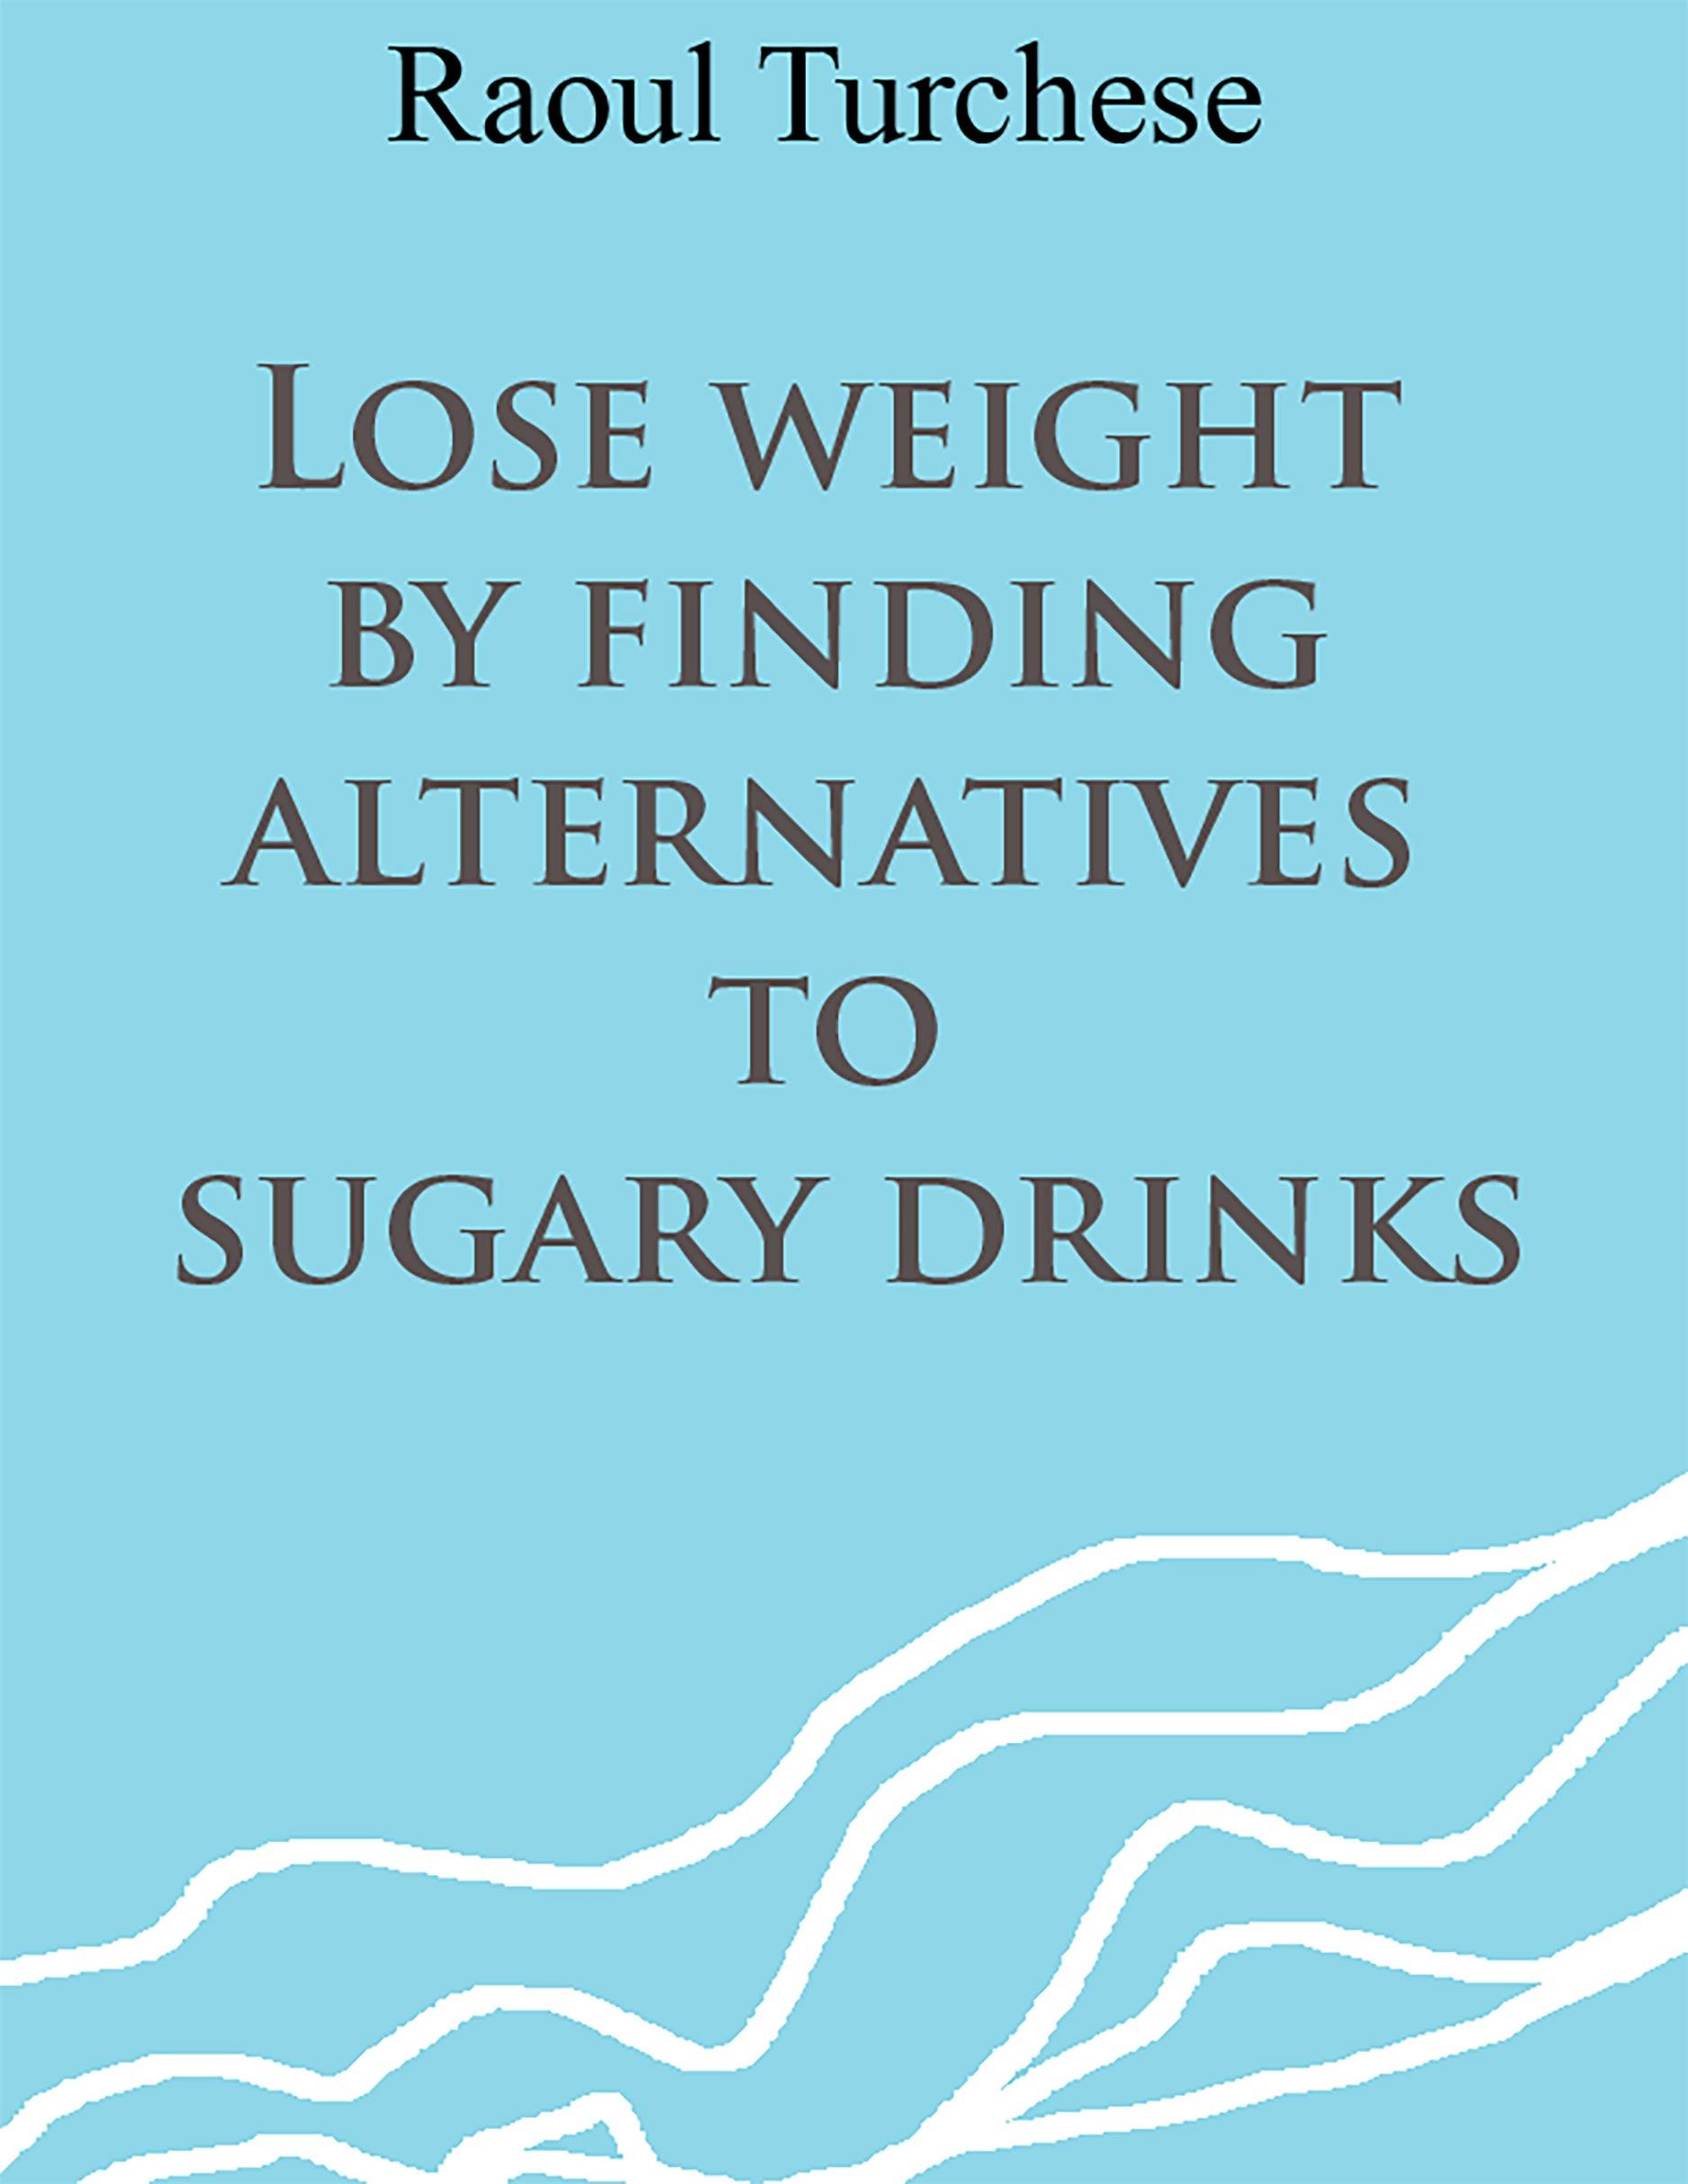 Lose weight by finding alternatives to sugary drinks